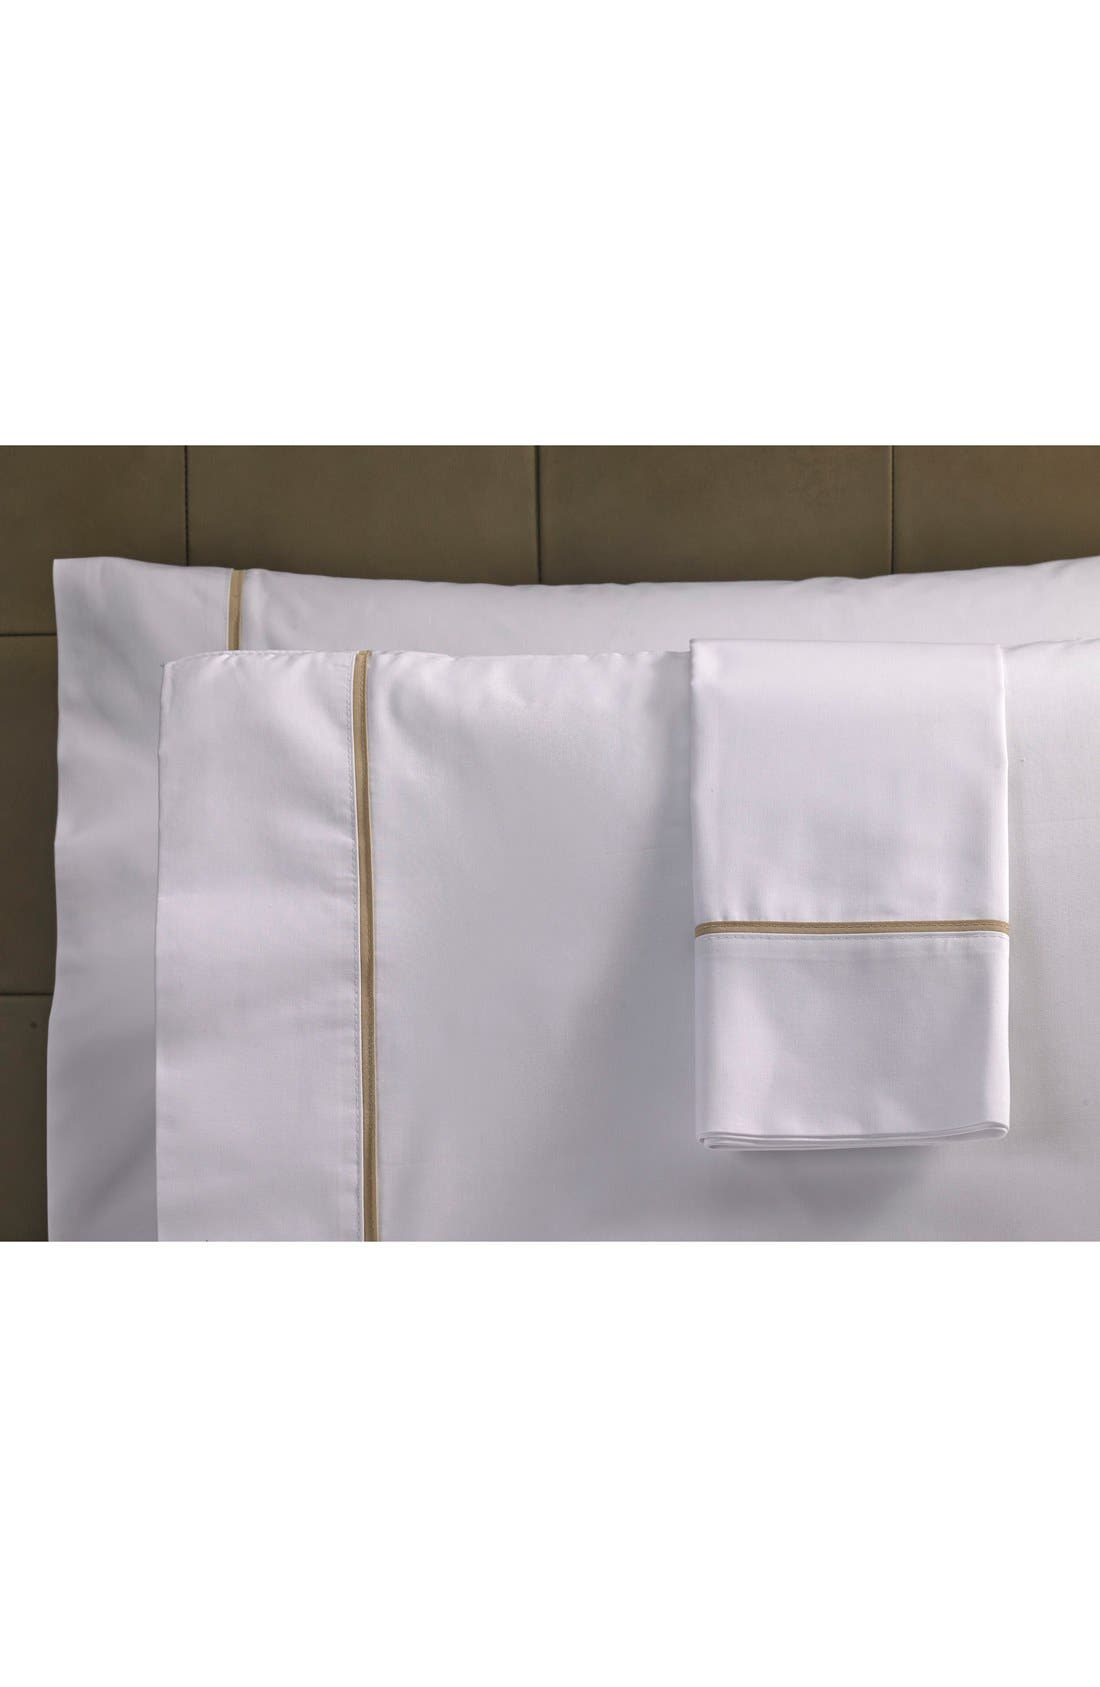 Alternate Image 1 Selected - Westin At Home Ultra Luxe 600 Thread Count Pillowcase